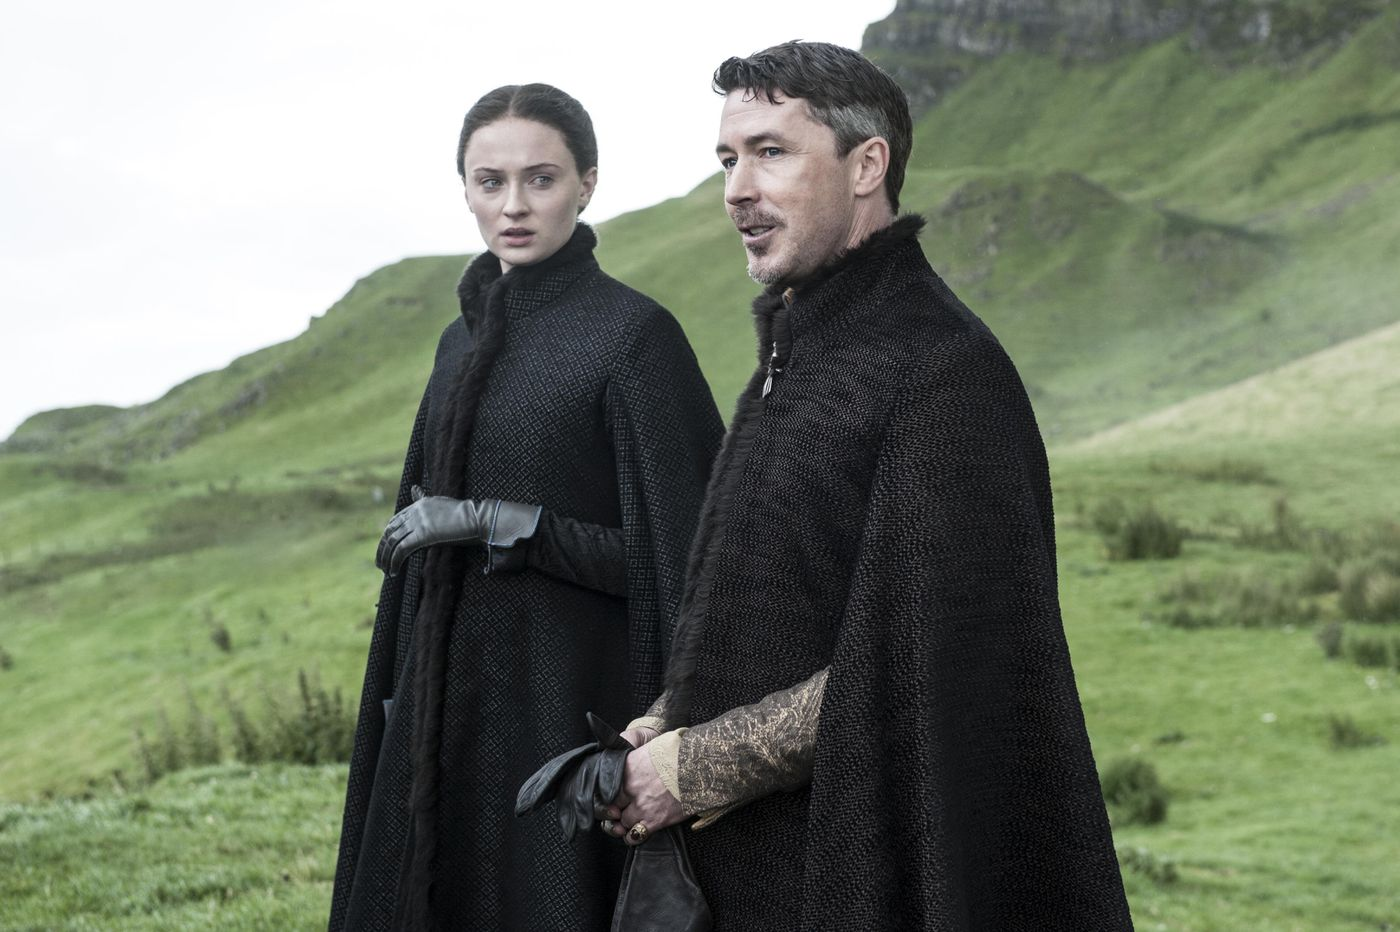 Reddit's most prolific Game of Thrones theorist shares his